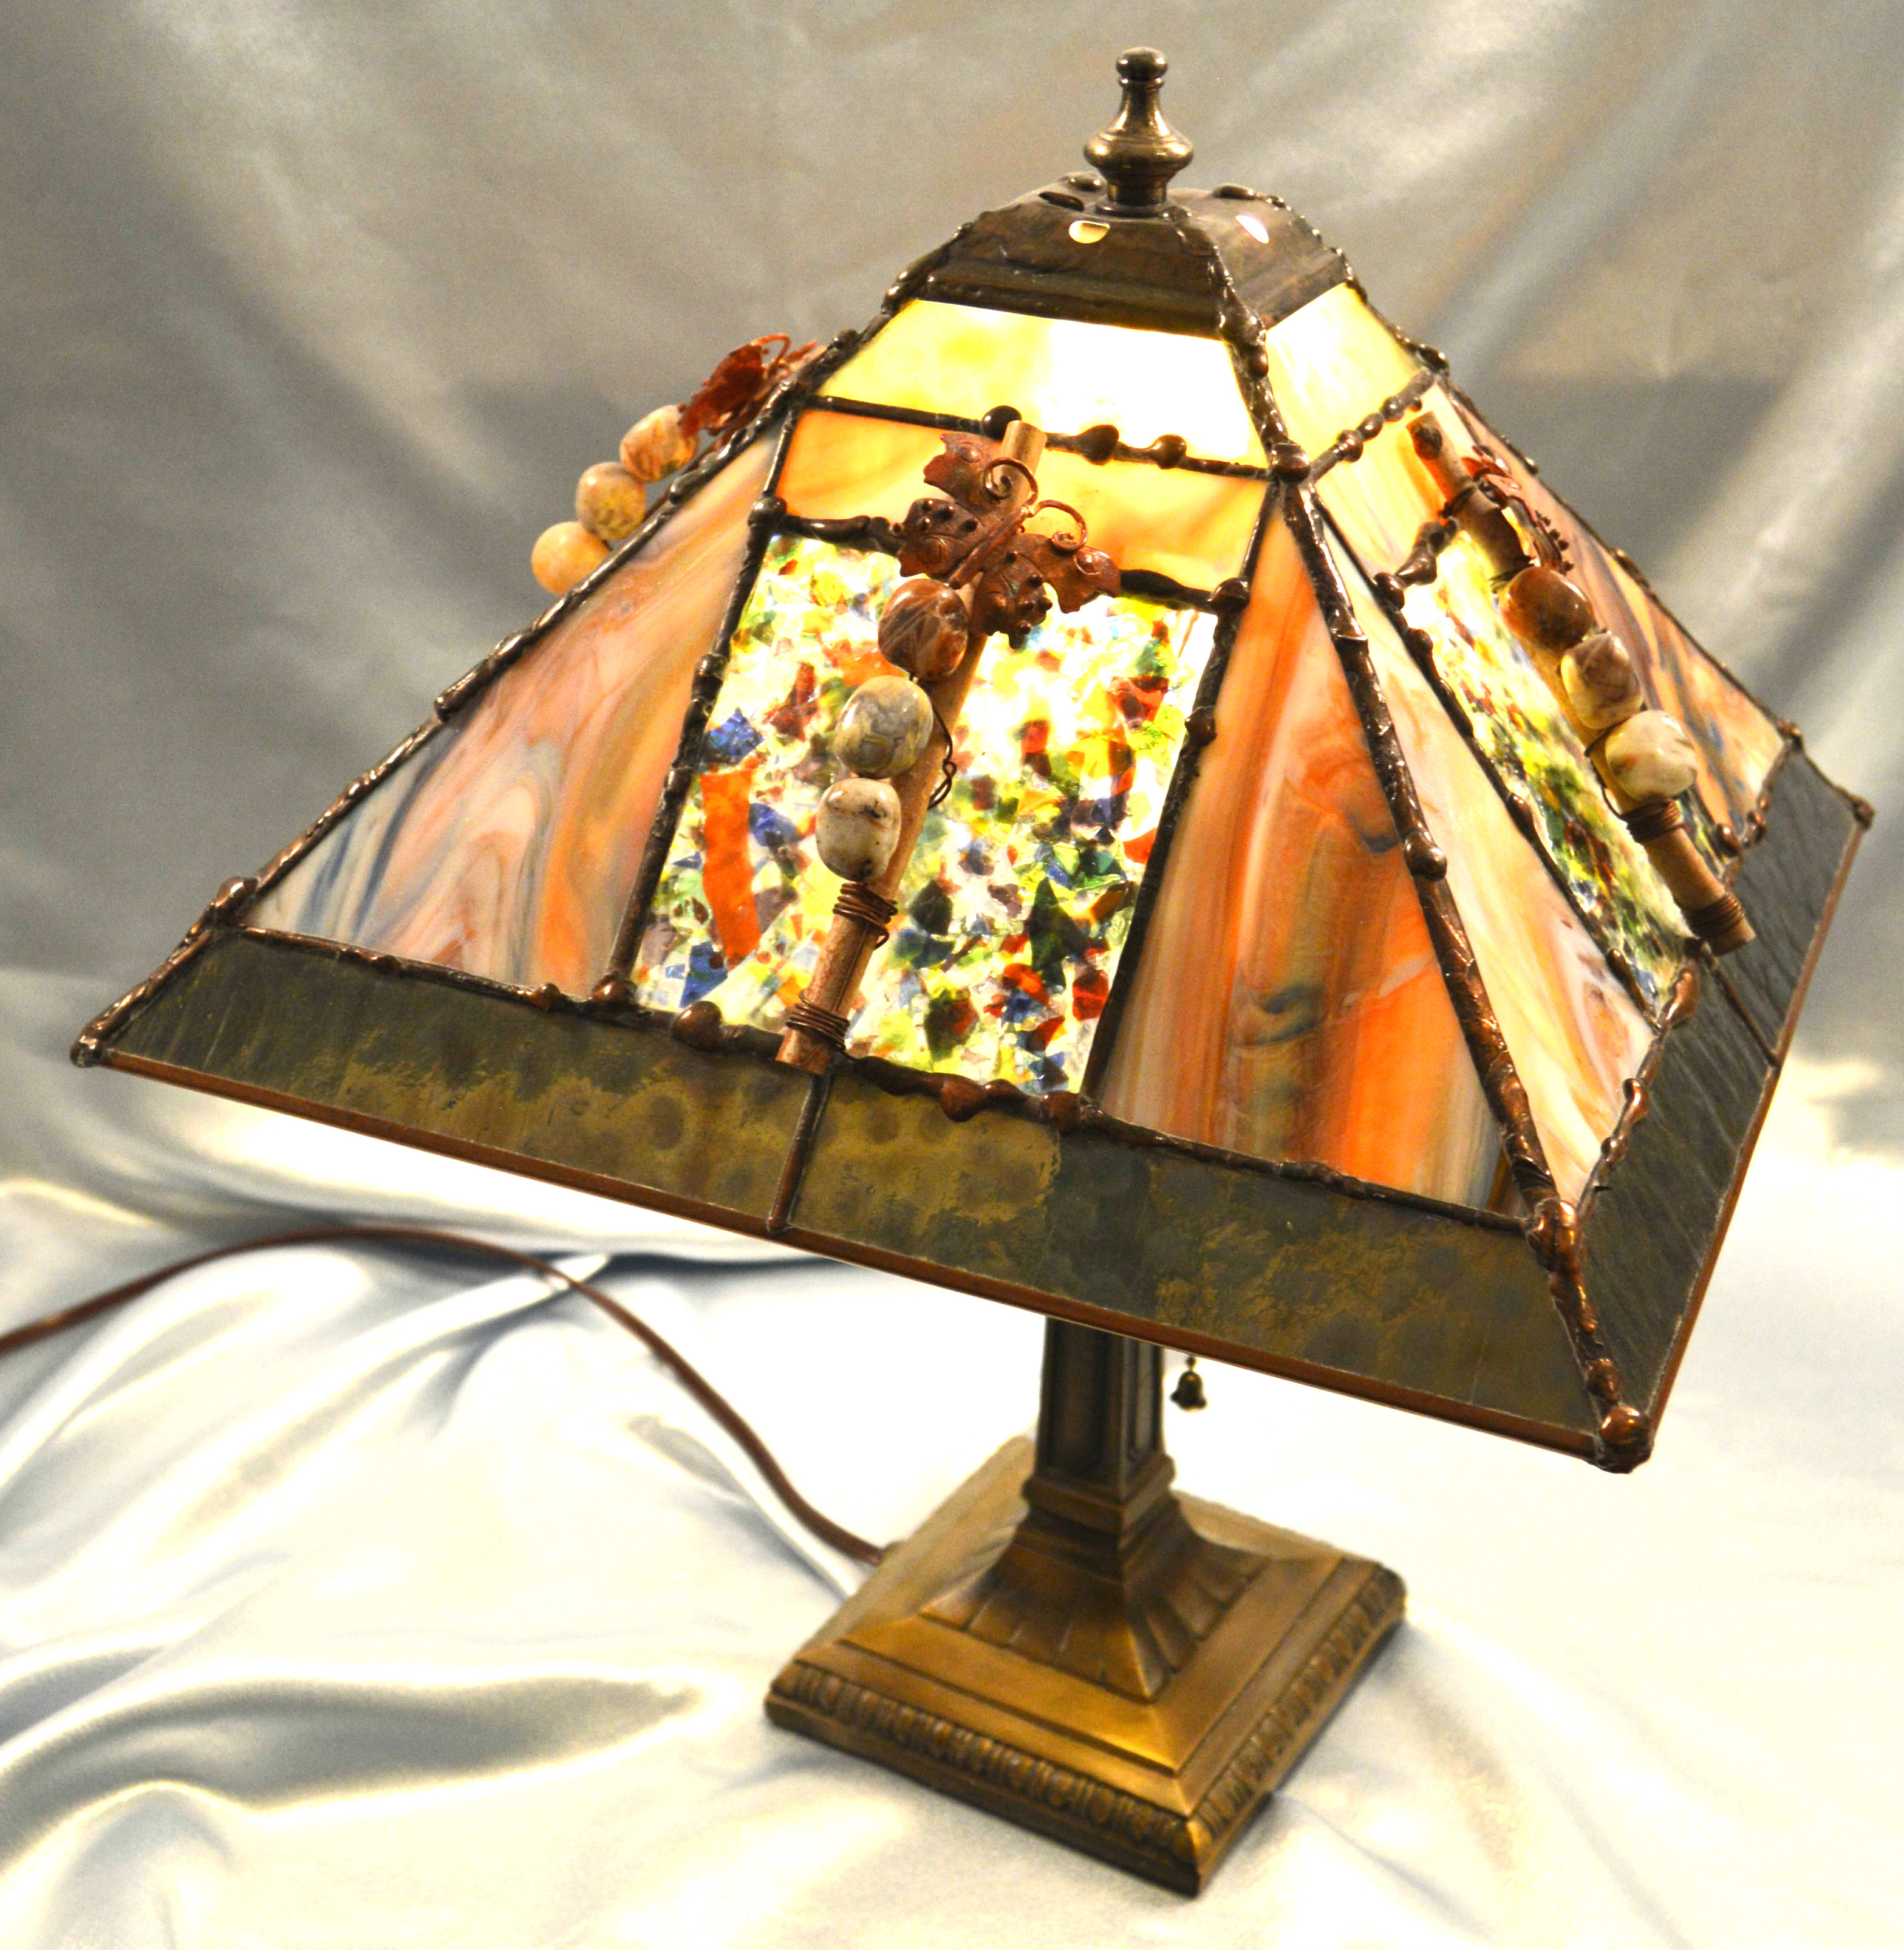 Advanced Stained Glass – 4-Panel Lamp